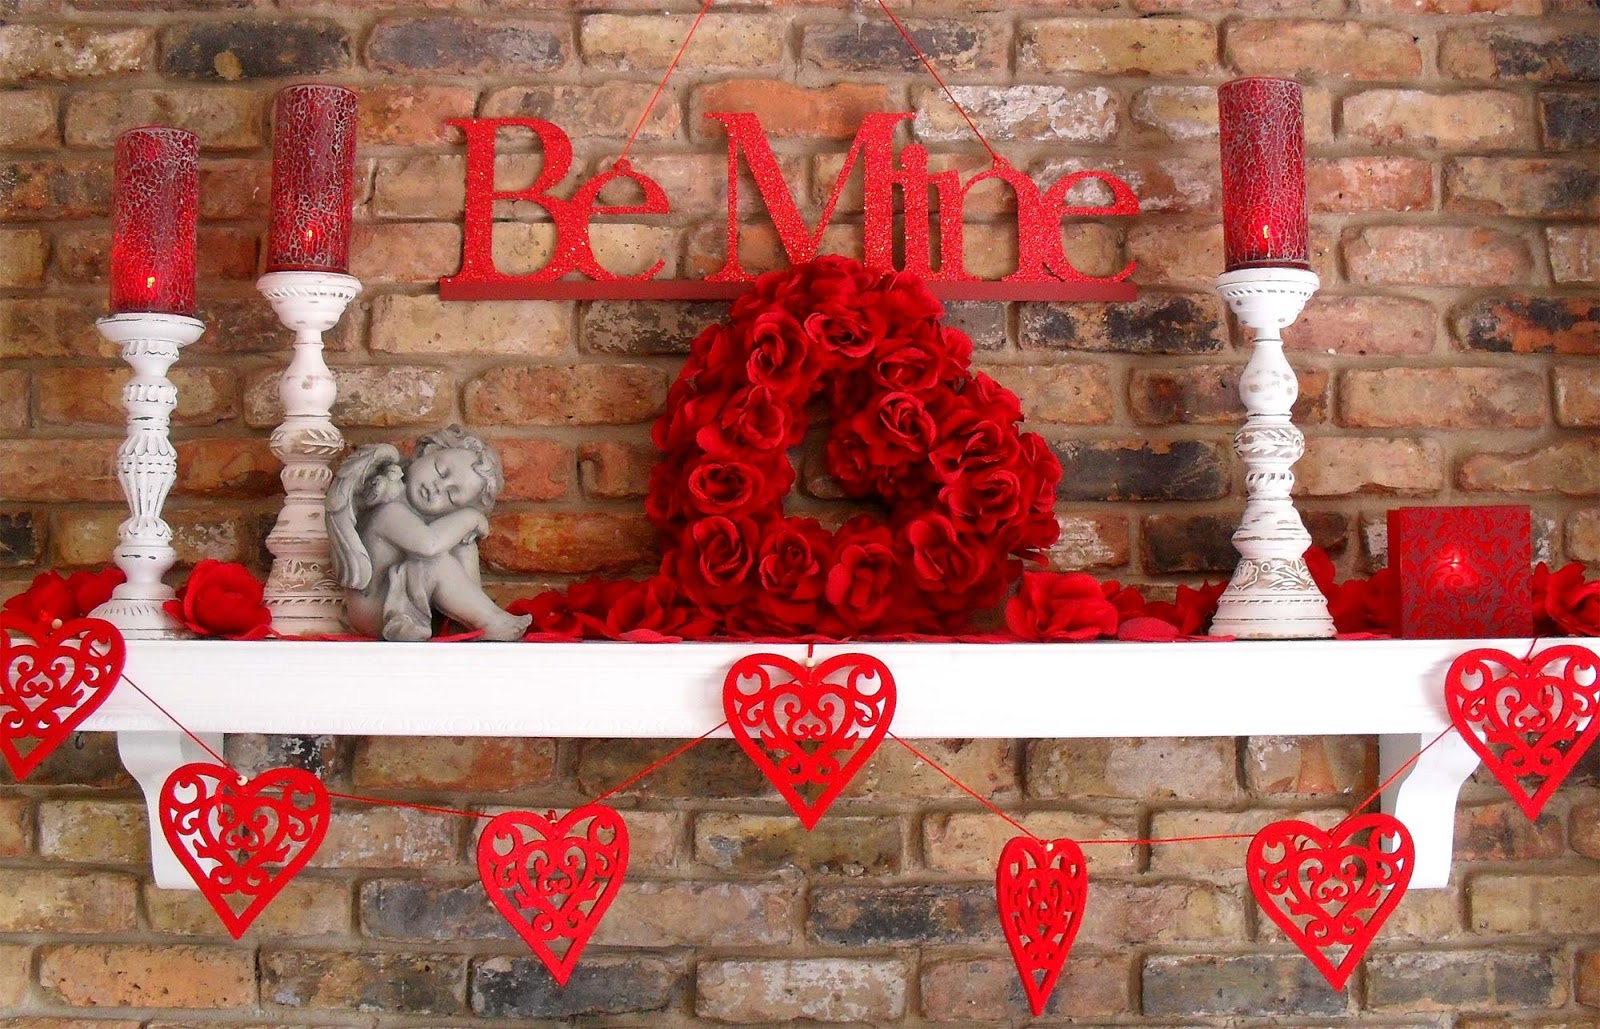 Valentines office ideas Decorating Ideas Valentines Day Decorations Ideas 2013 To Decorate Bedroomoffice And House Love My Live Love My Live Valentines Day Decorations Ideas 2013 To Decorate